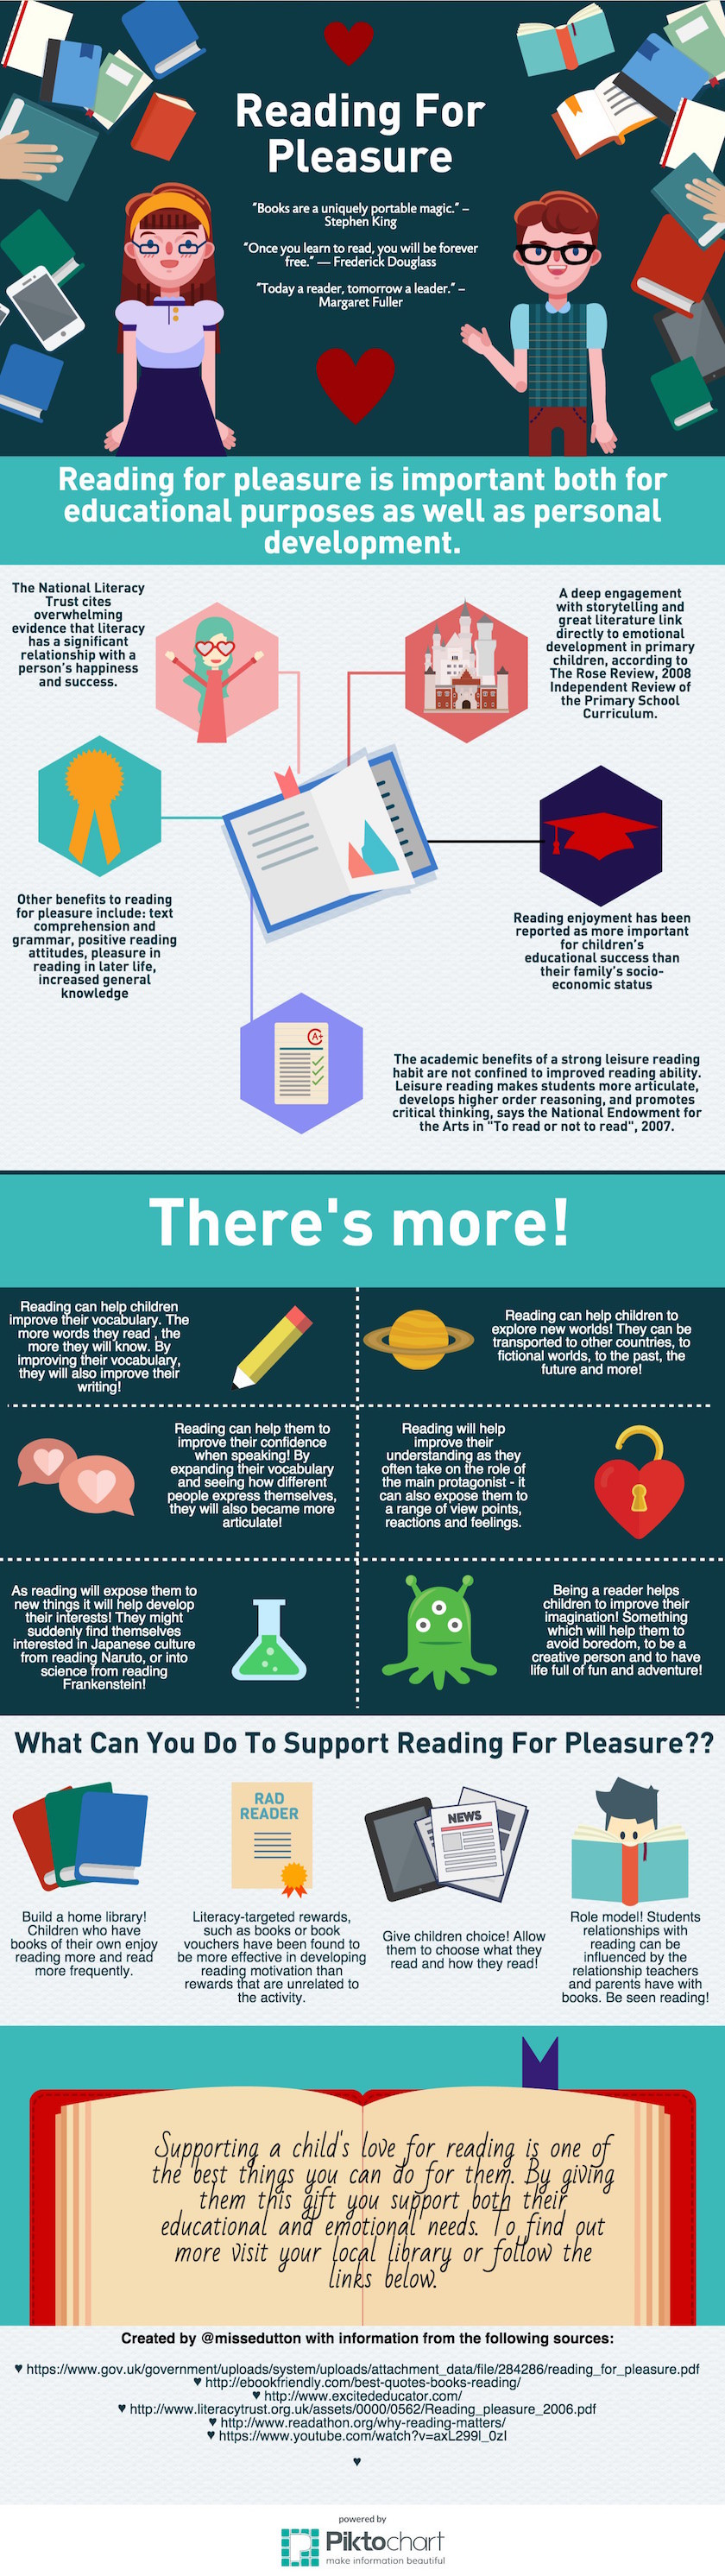 The benefits of reading for pleasure #infographic